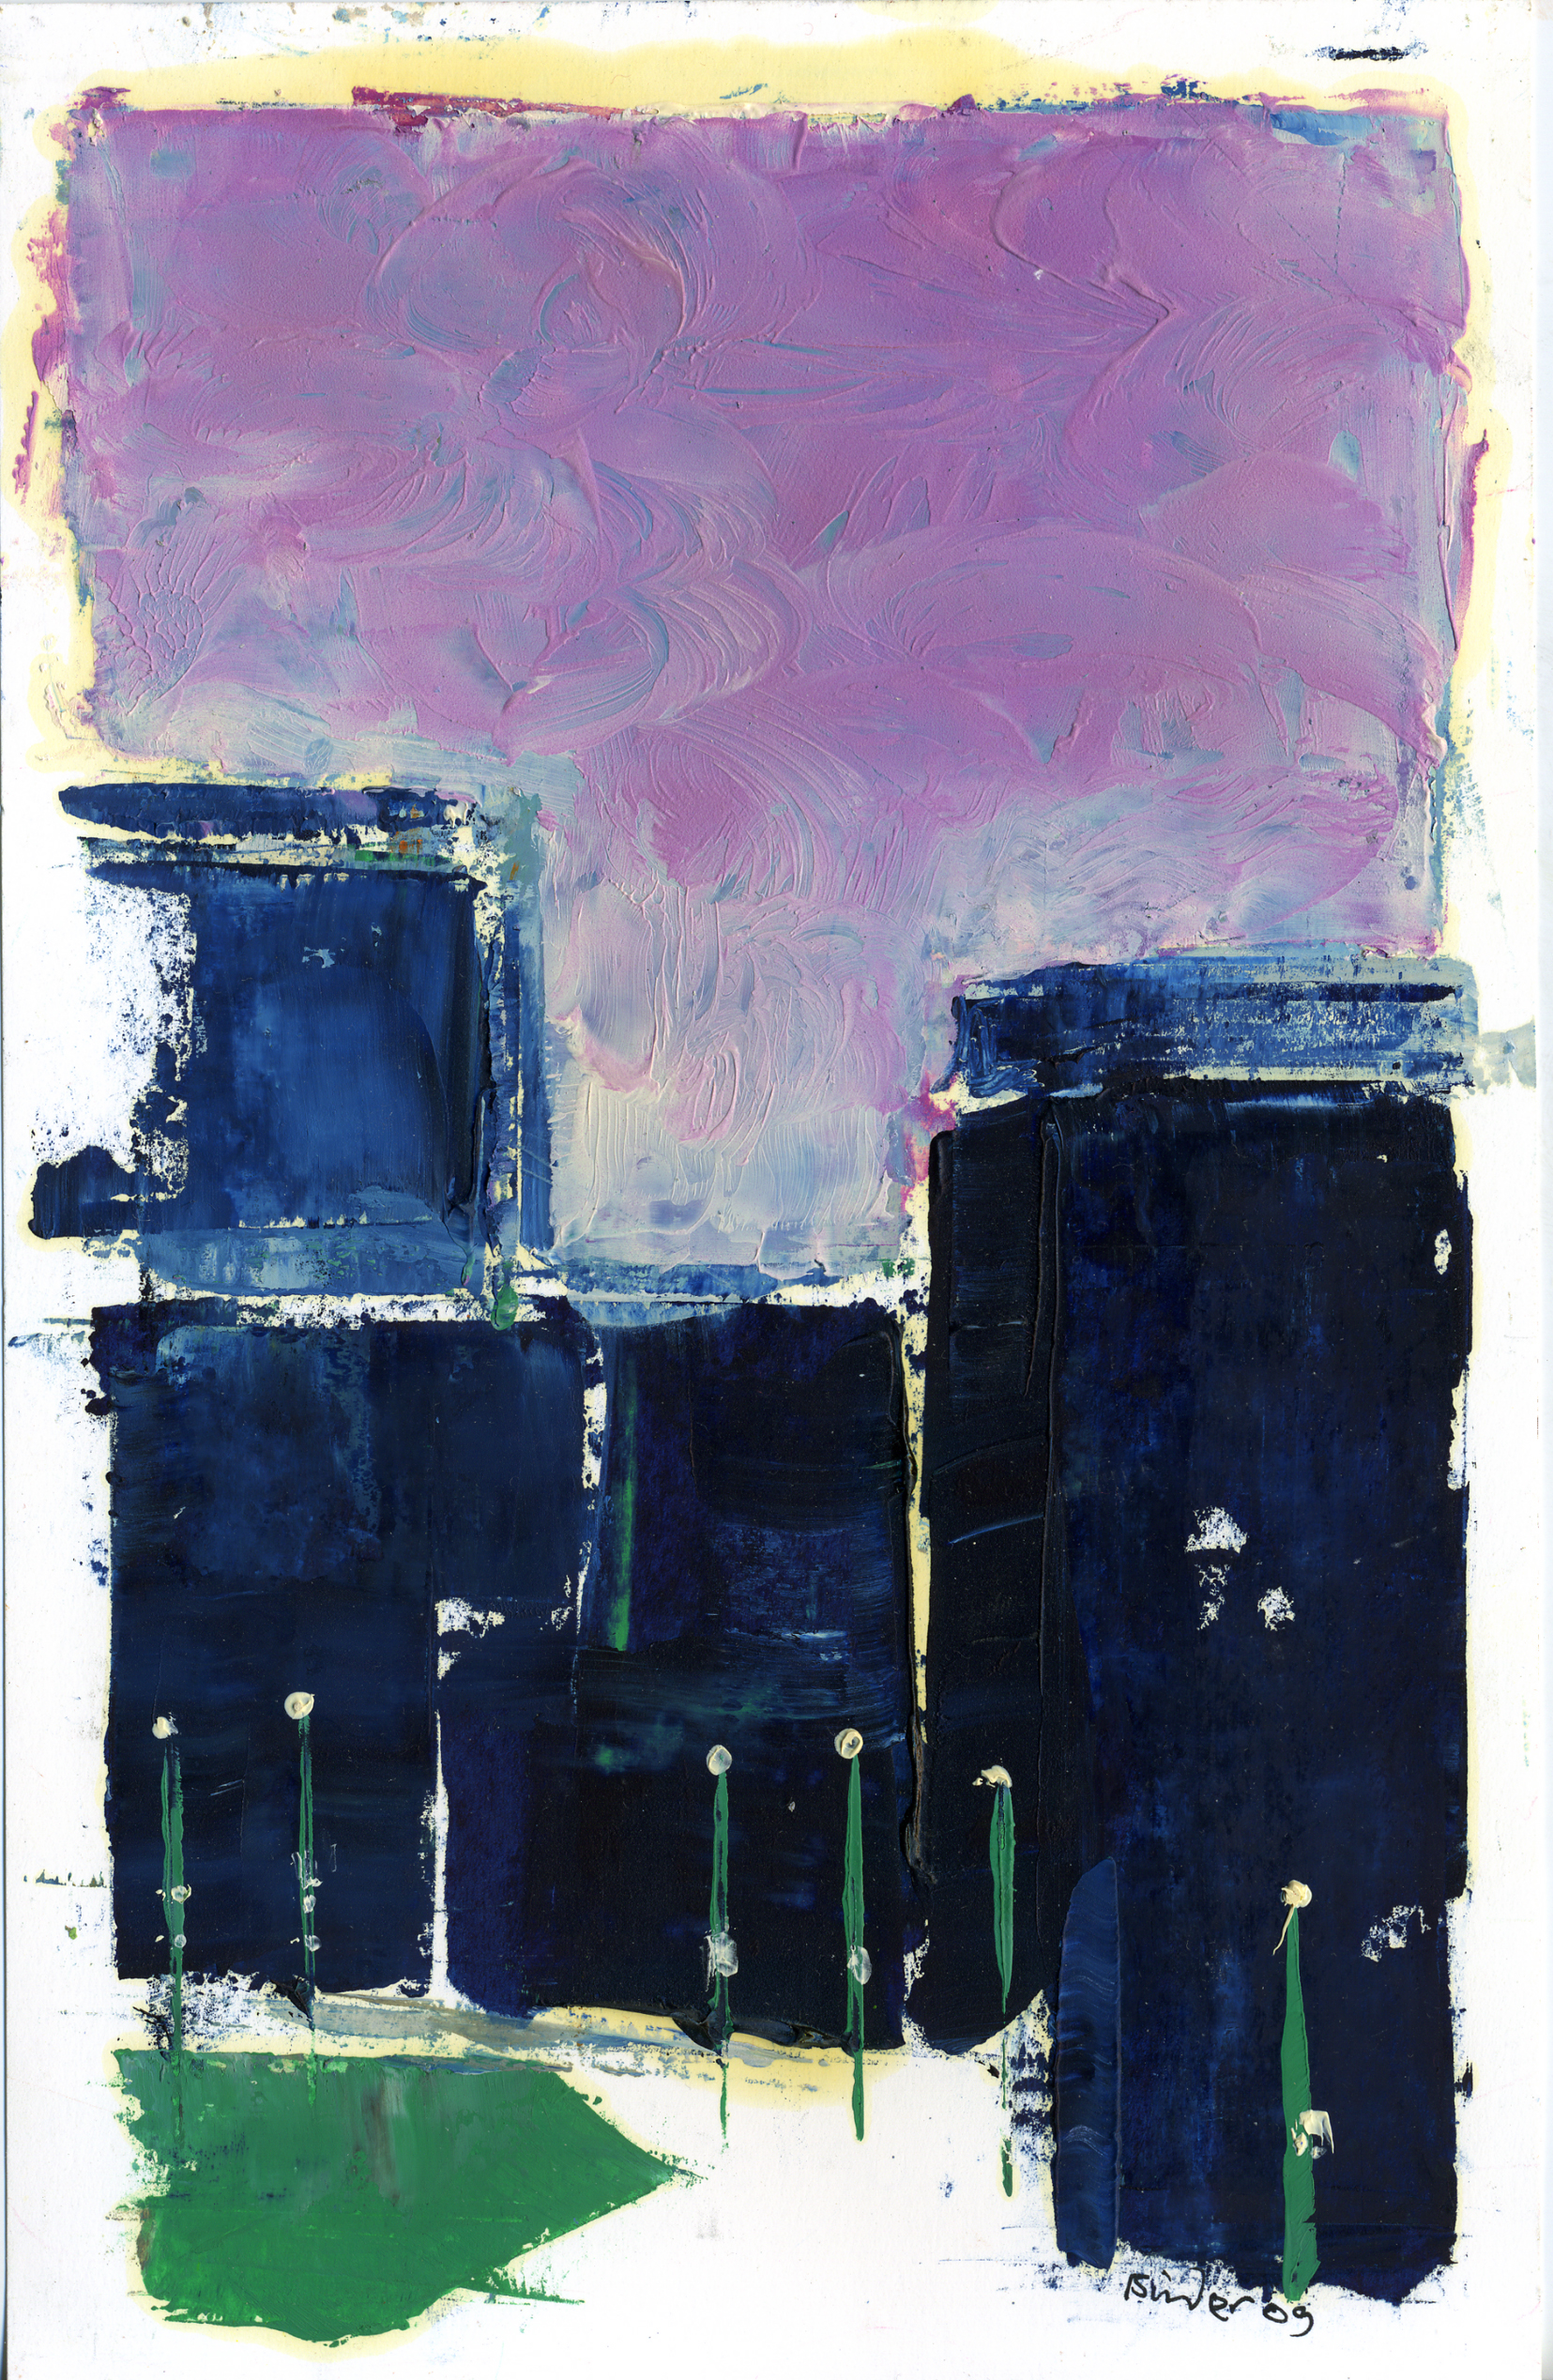 "Deep Blue and Violet (a cityscape)   Oil on paper  8-1/2"" x 5-1/2""  $385  Click image to enlarge   Inquire"